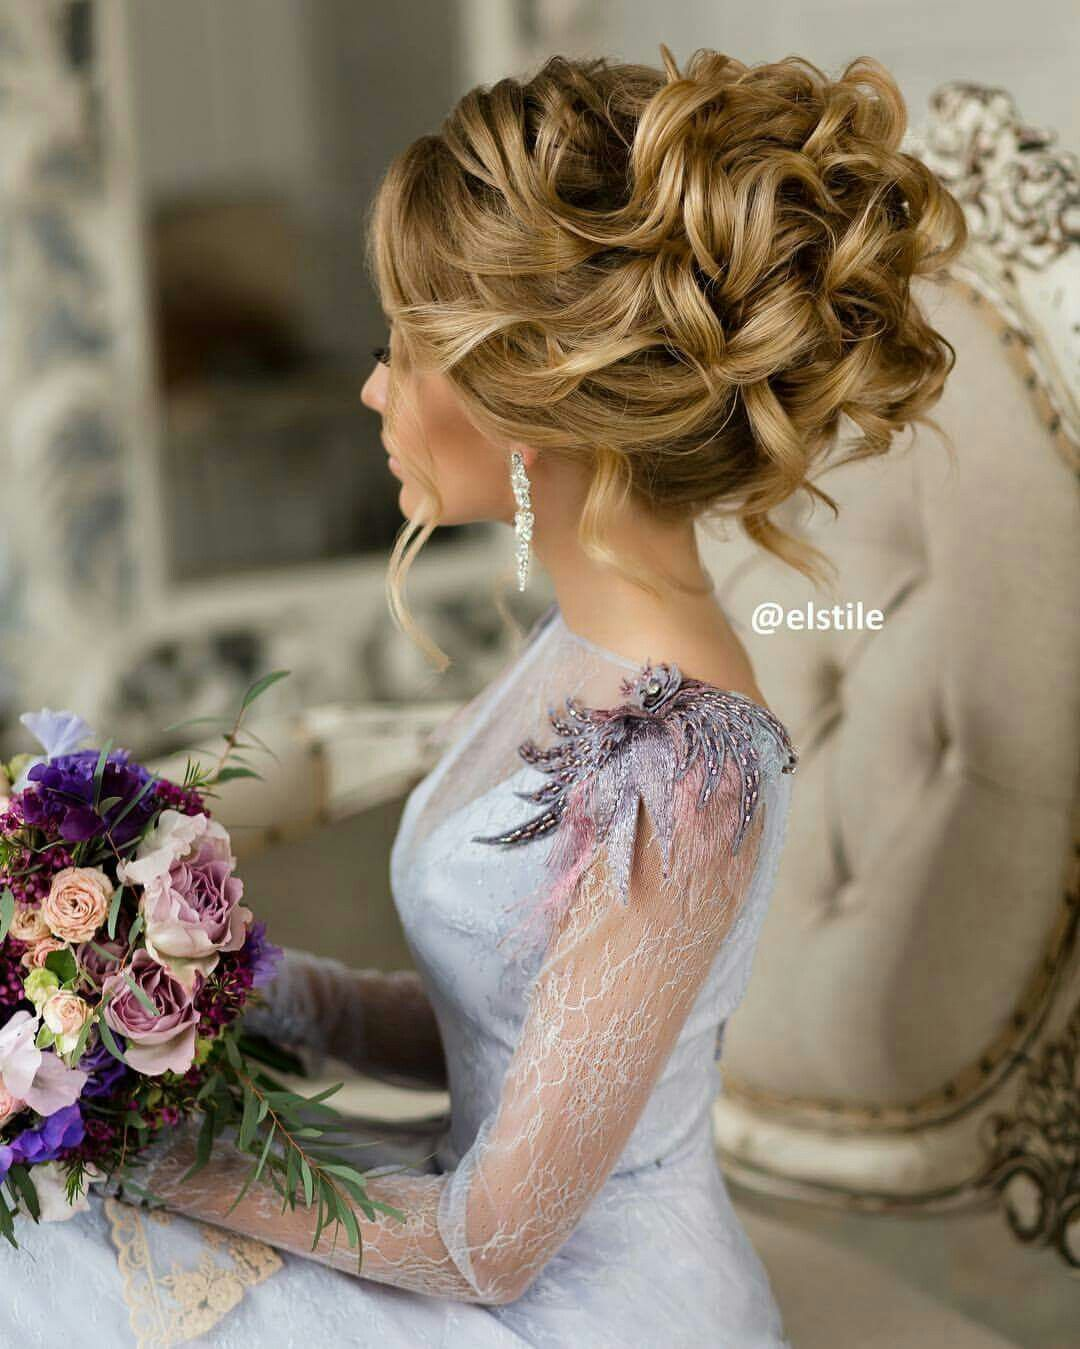 Wedding Hairstyle With Hair Extensions: Wedding Updo, Stunning! You Can Add Extensions If You Need